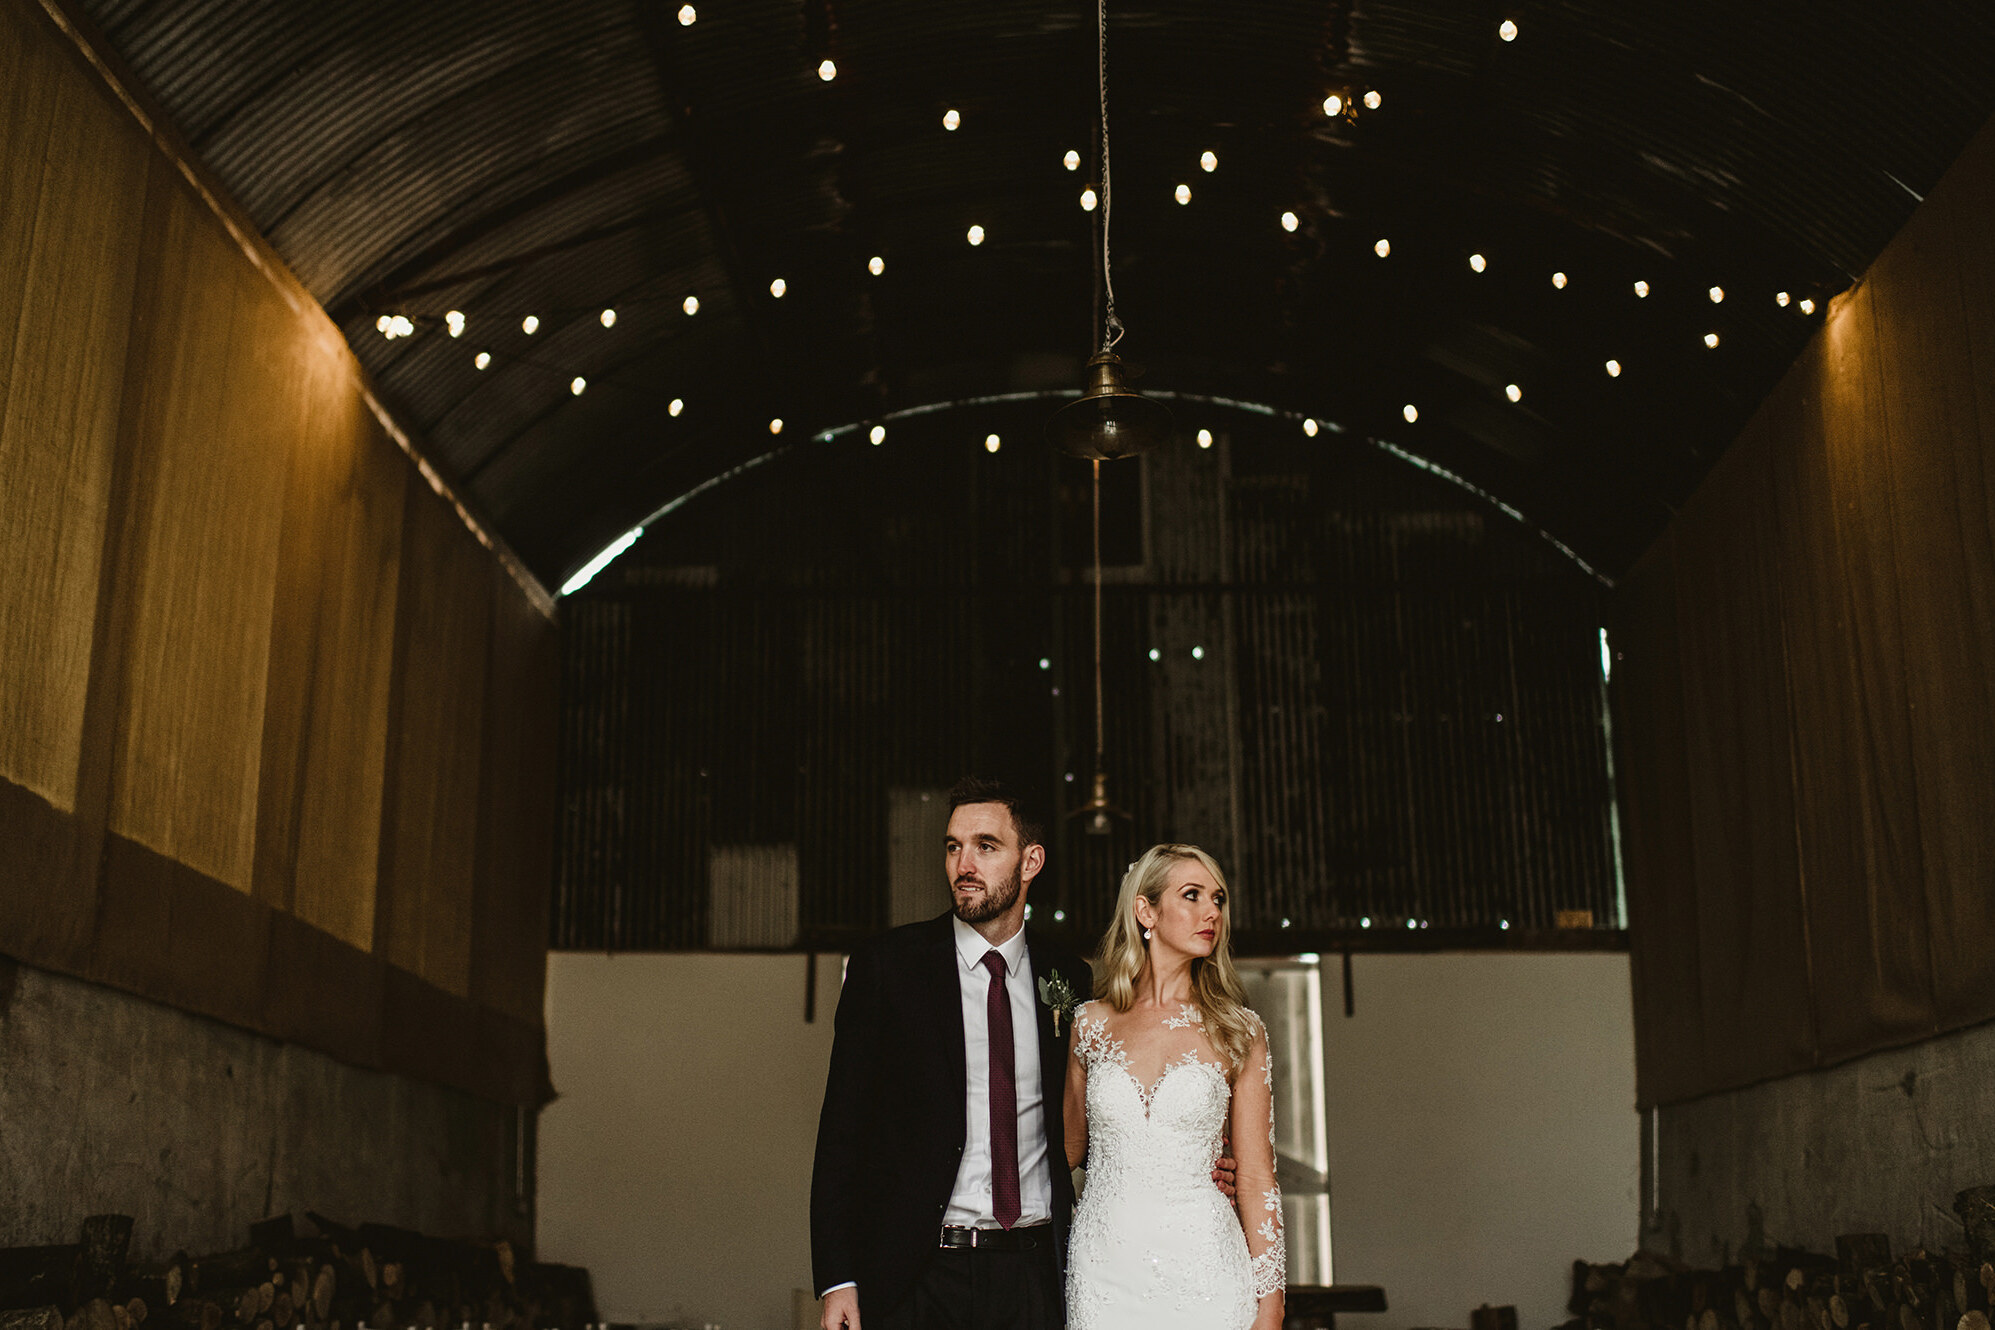 Inside Quirky Wedding Barn in Cloughjordan House